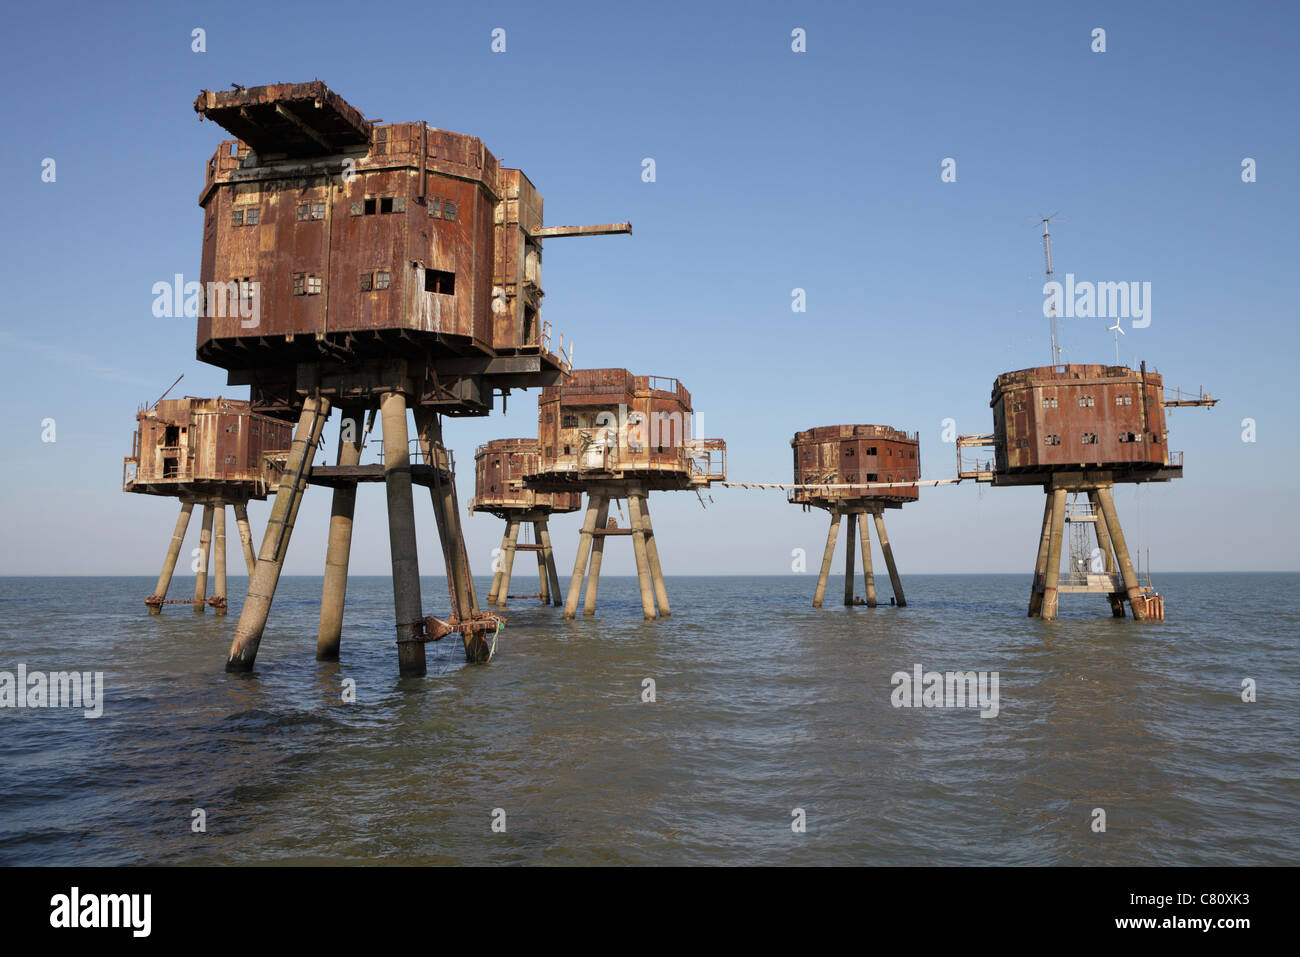 Maunsell sea forts. Red sands sea forts Thames estuary. They are now abandoned. - Stock Image